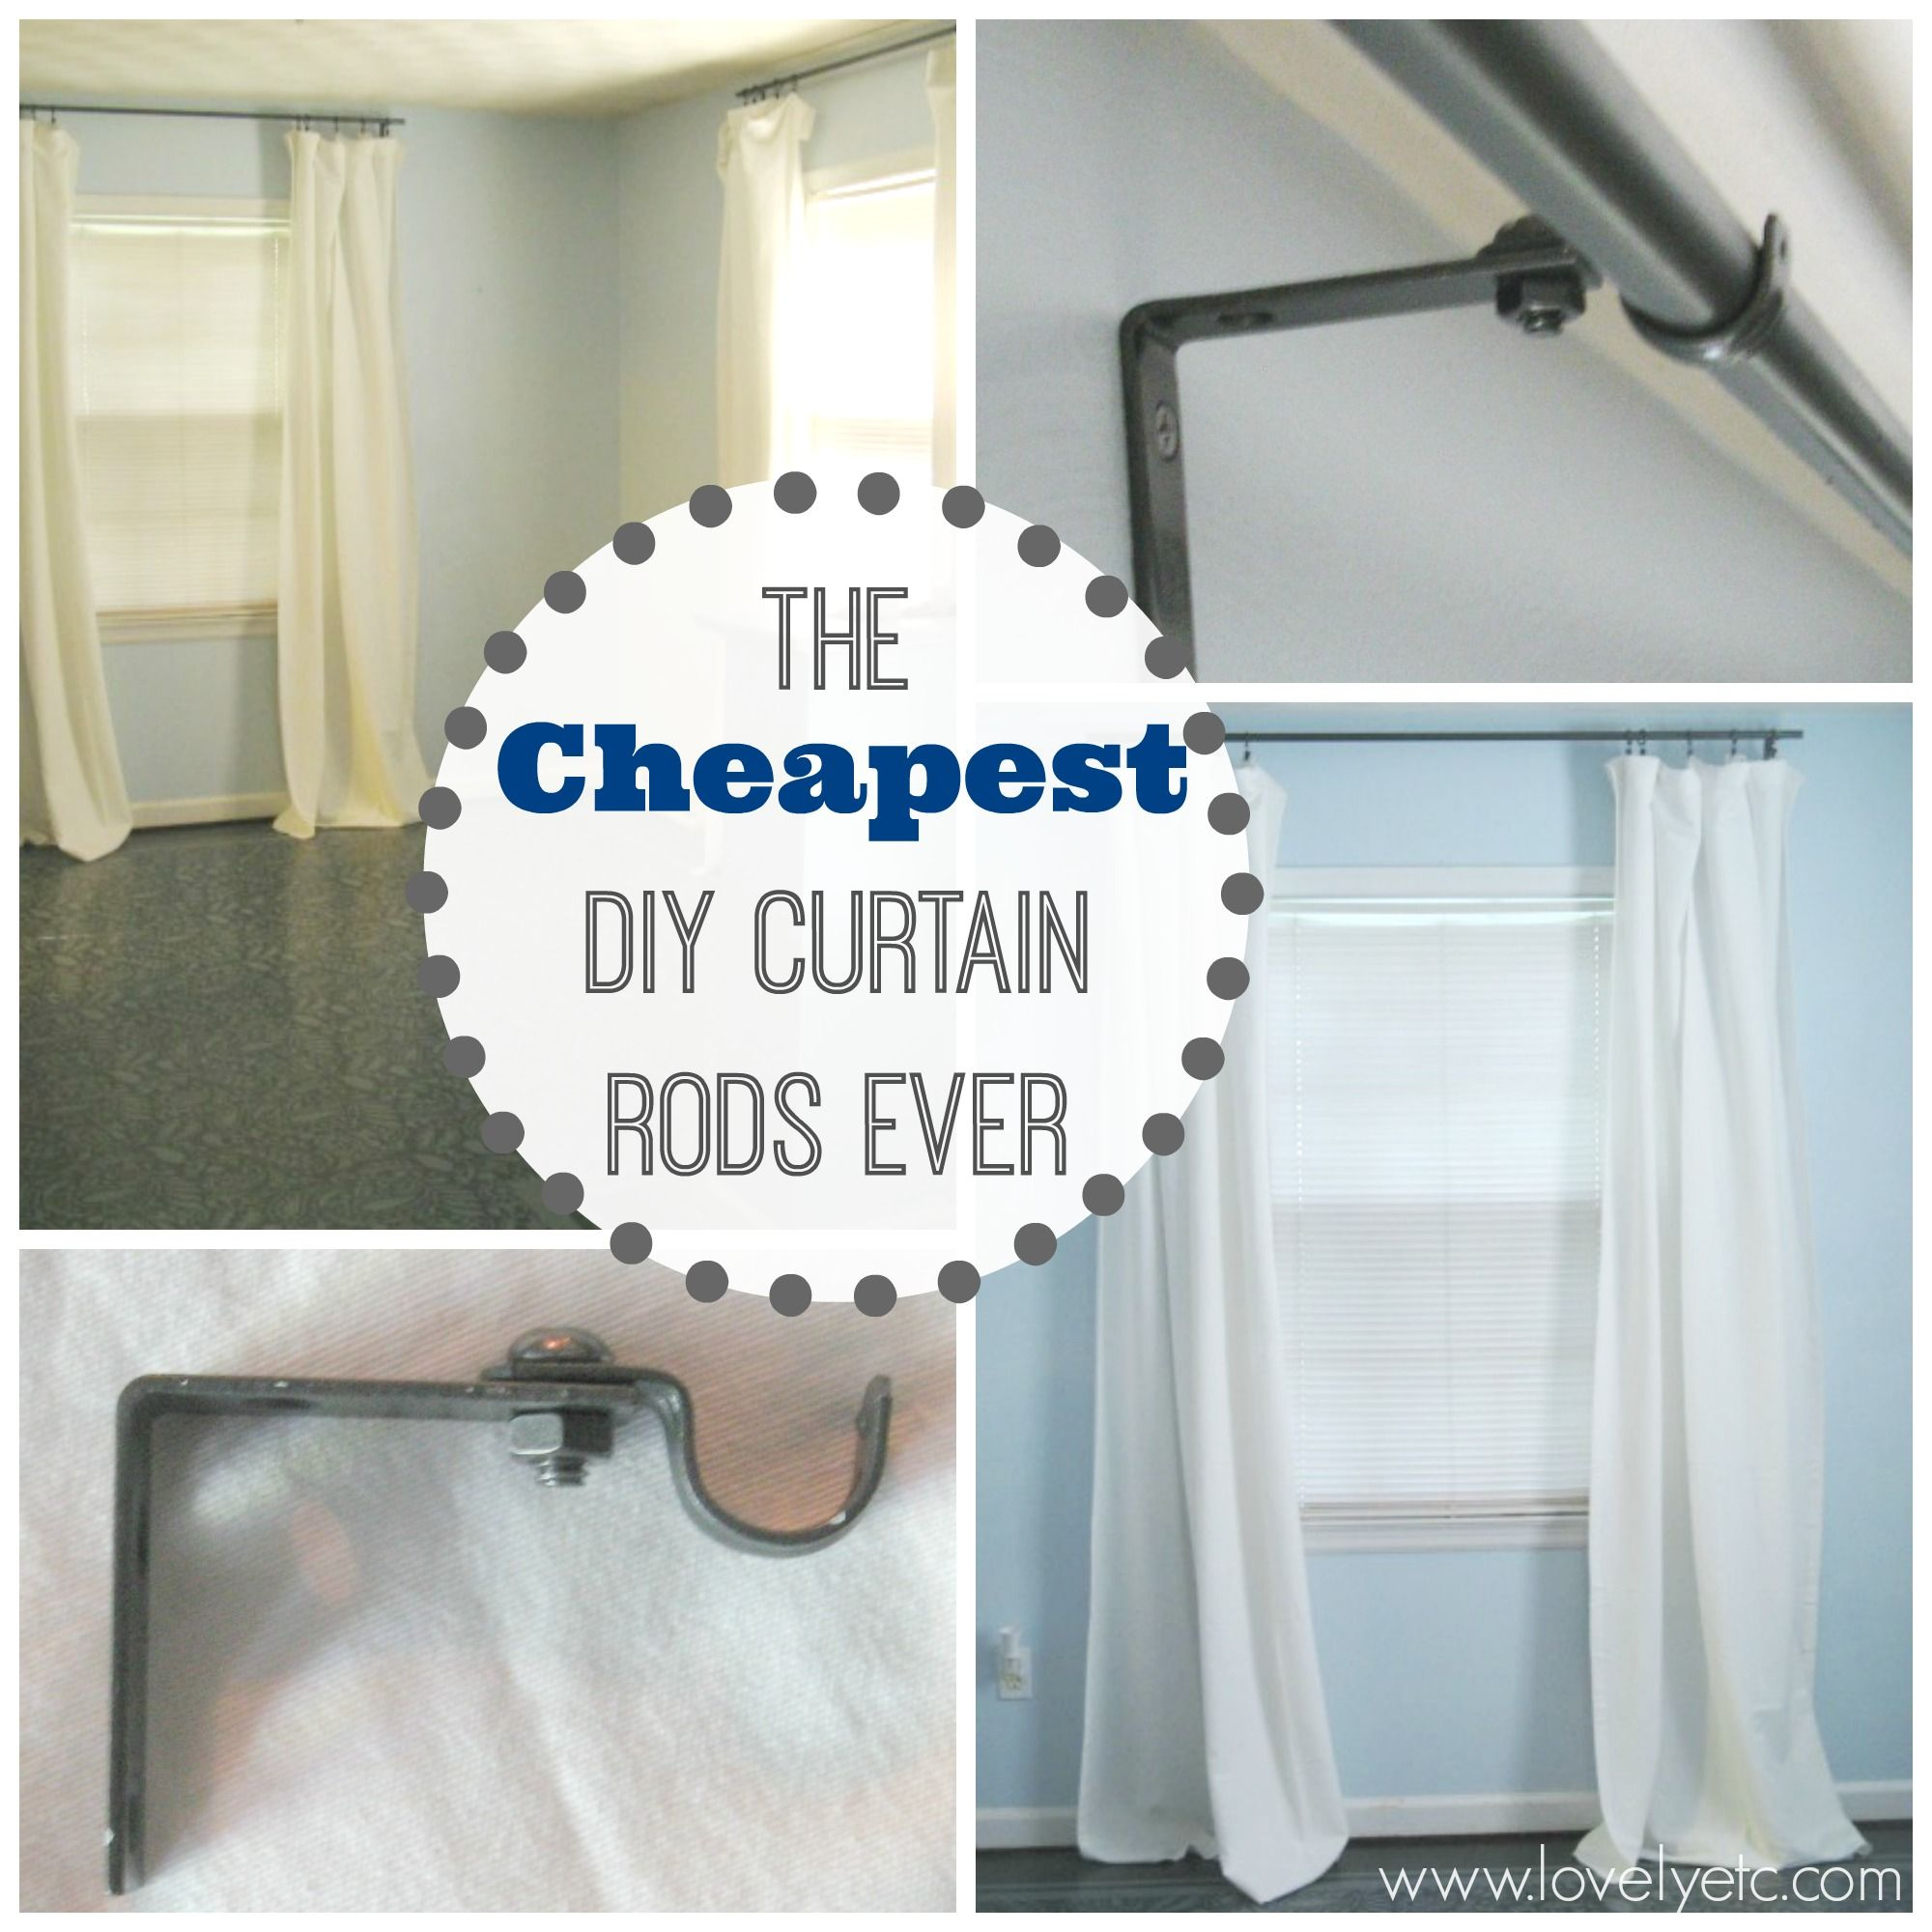 ordinary about know your discount cheap rods needs to things cheapest boss seven curtain